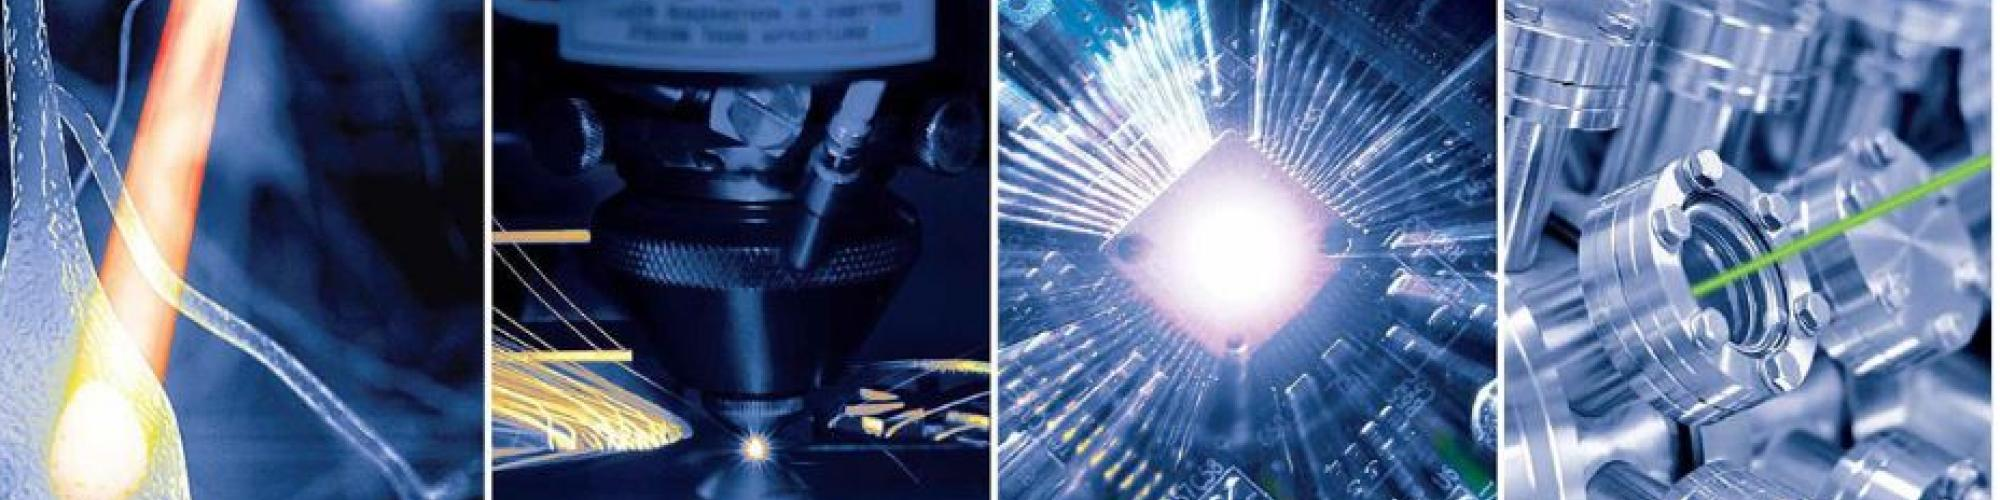 Coherent LaserSystems GmbH & Co. KG